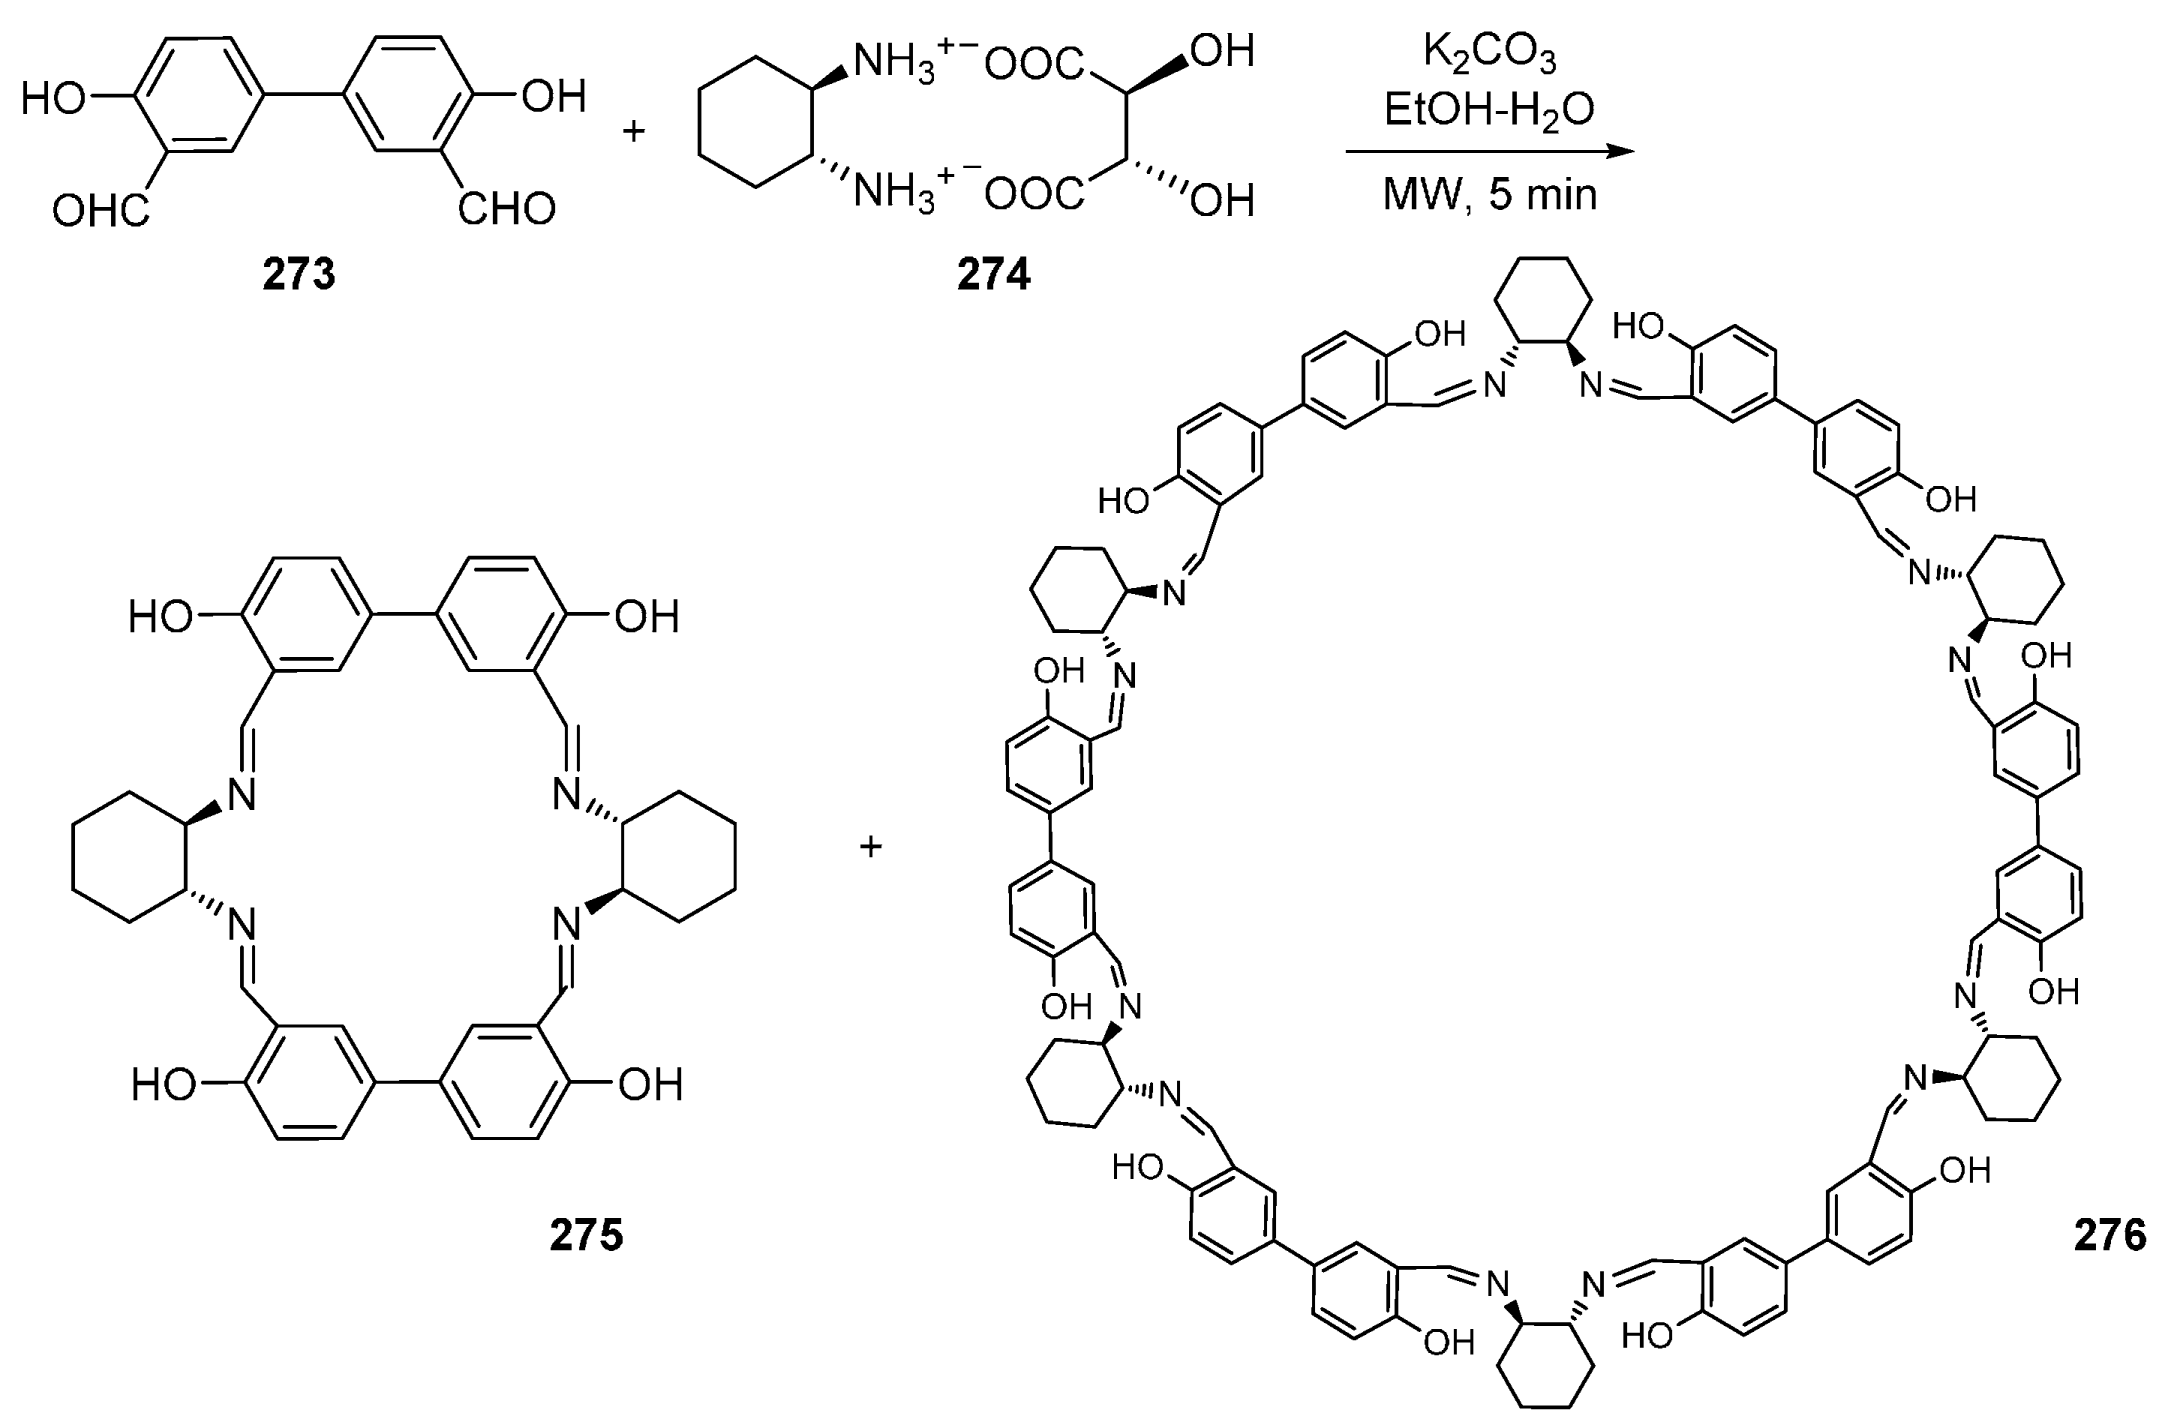 enyne cross-metathesis with ruthenium carbene catalysts Abstract with the commercial availability of well-defined ruthenium metathesis catalysts enyne cross metathesis enyne,and diyne metathesis in natural product.